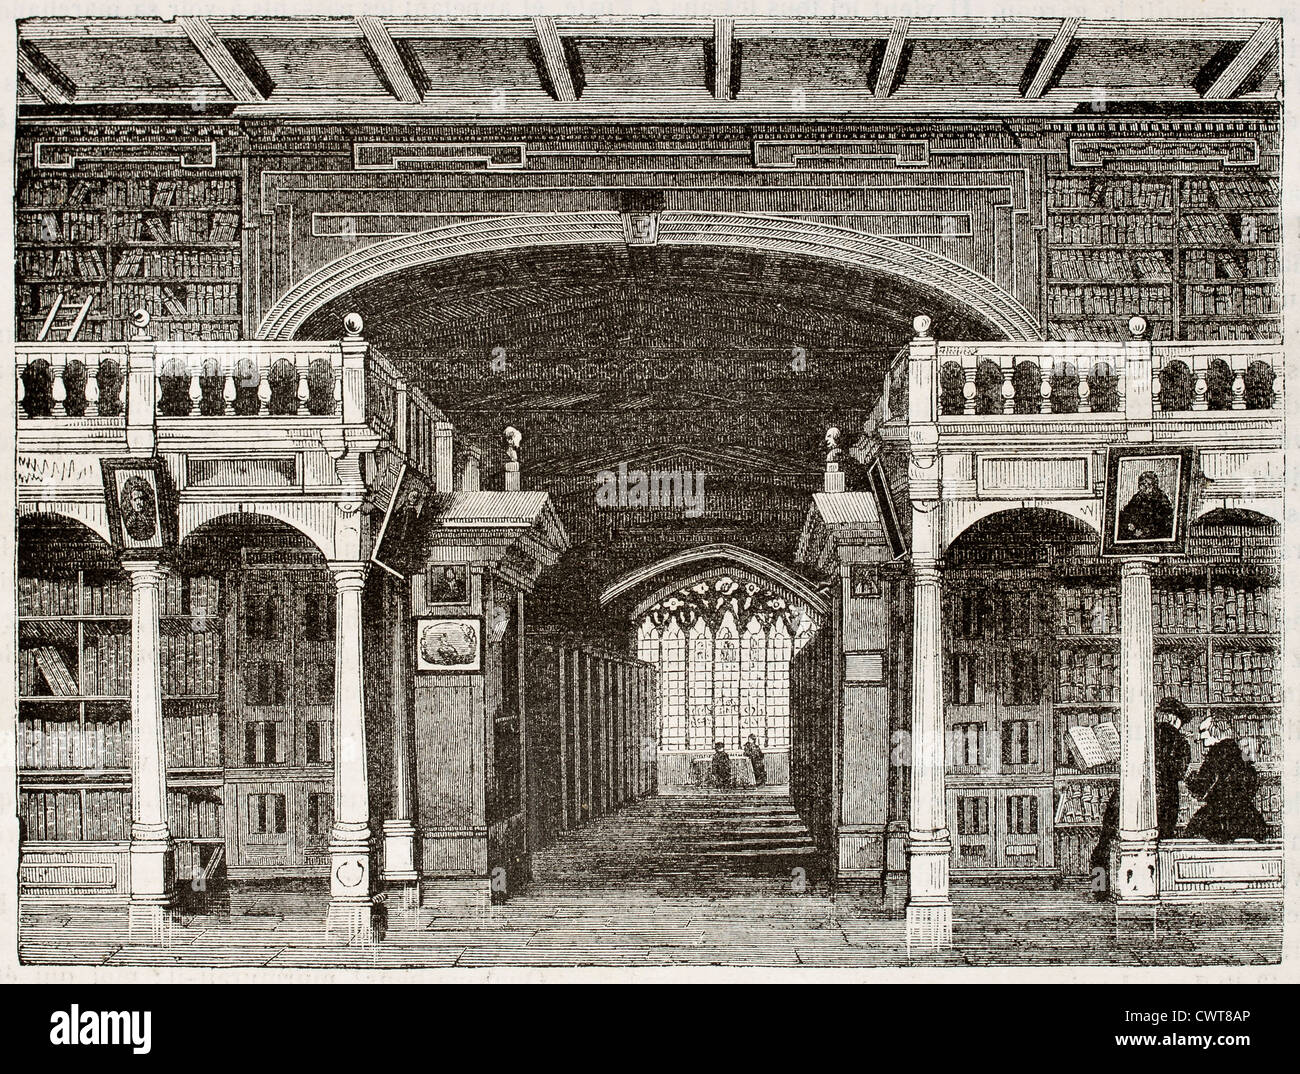 Bodleian library interior old illustration, University of Oxford - Stock Image